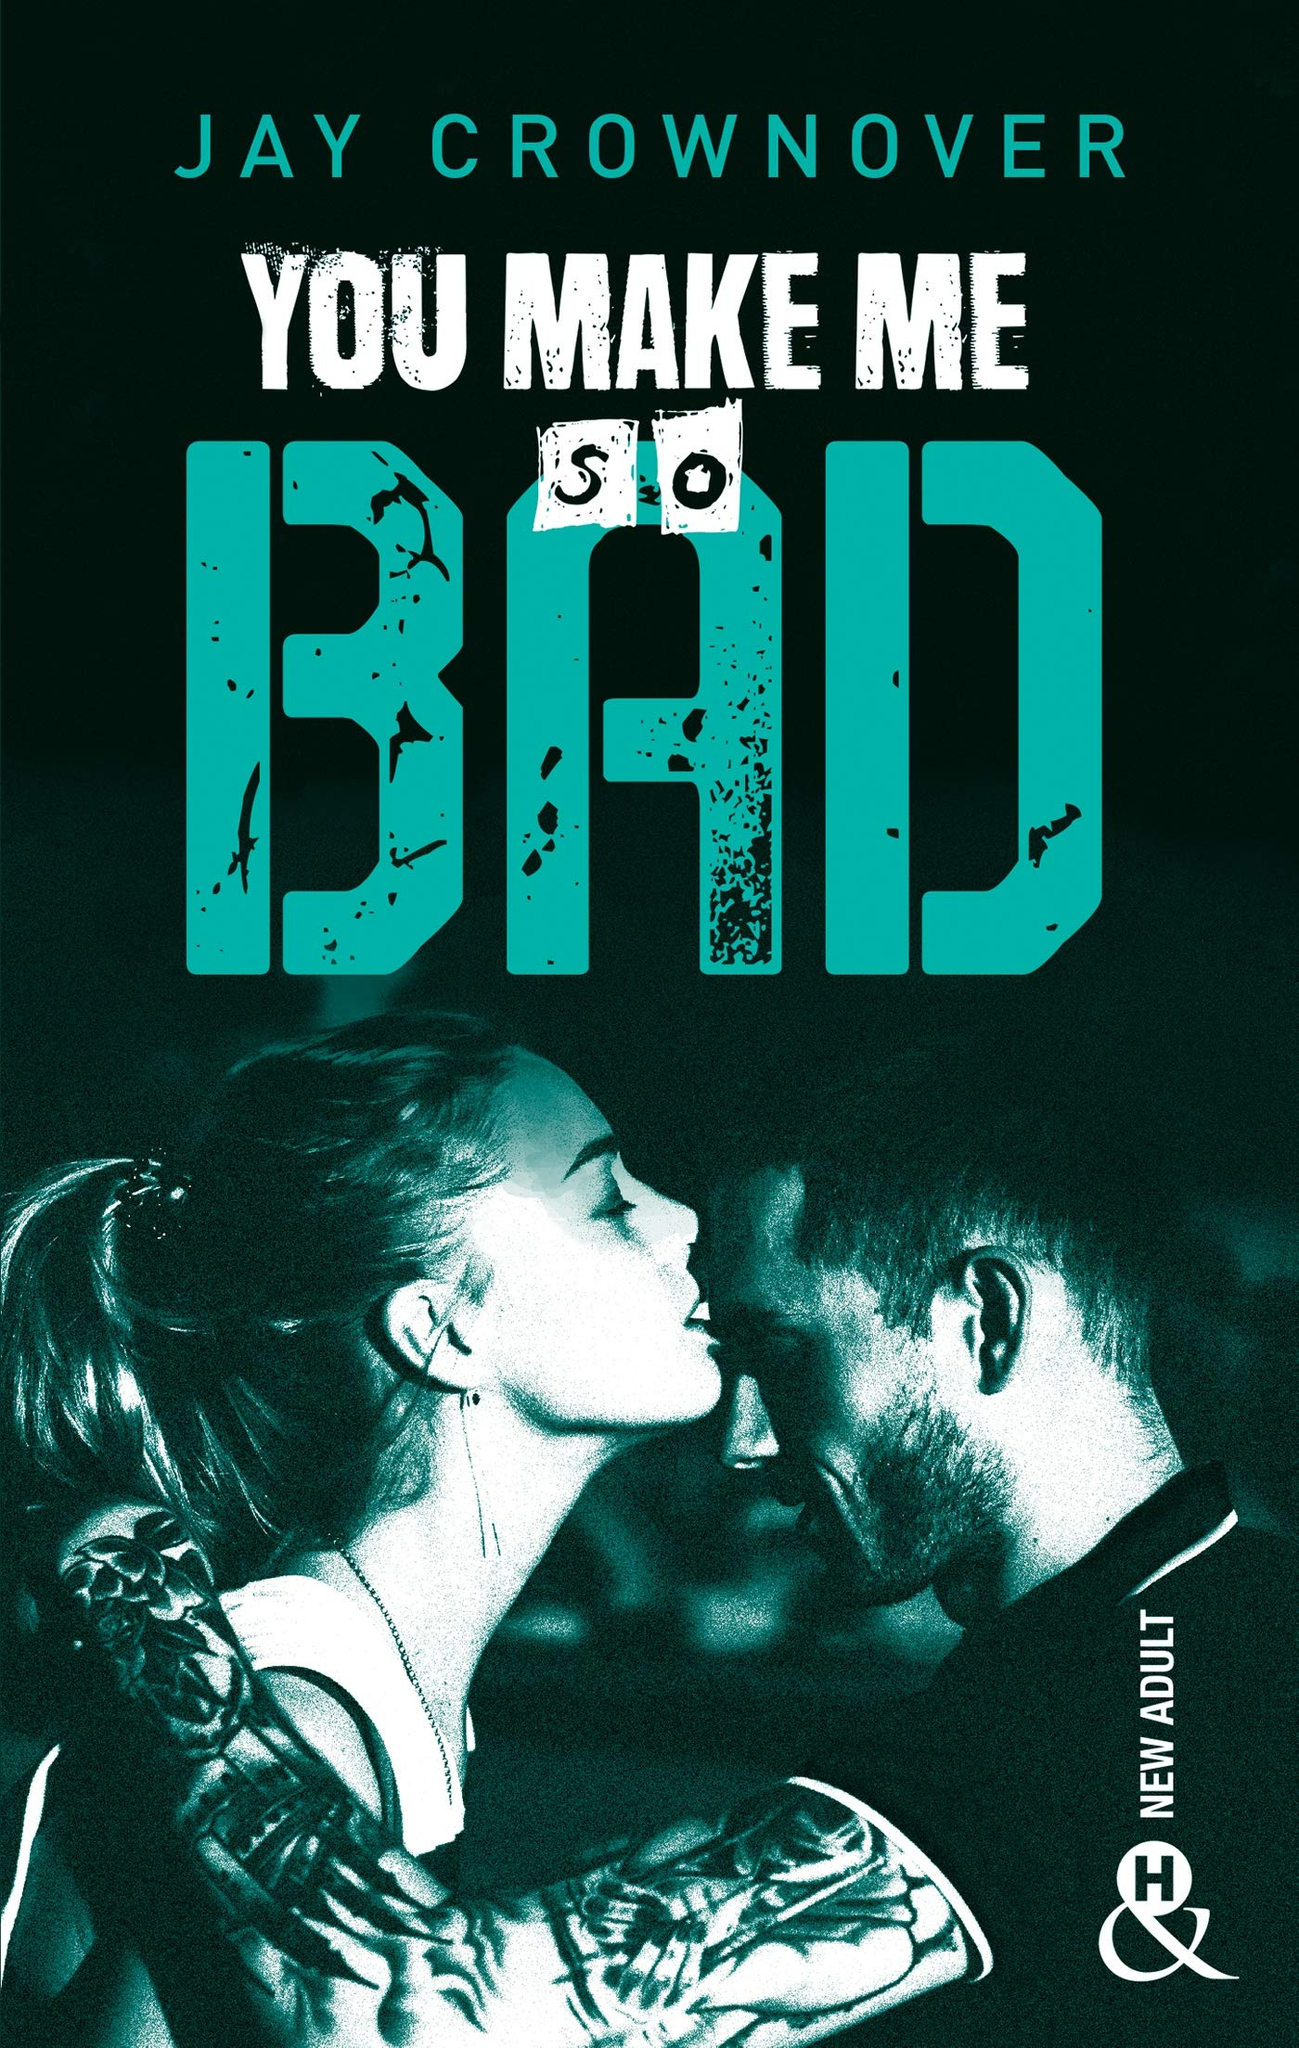 You make me so bad de Jay Crownover [Bad Tome 6]